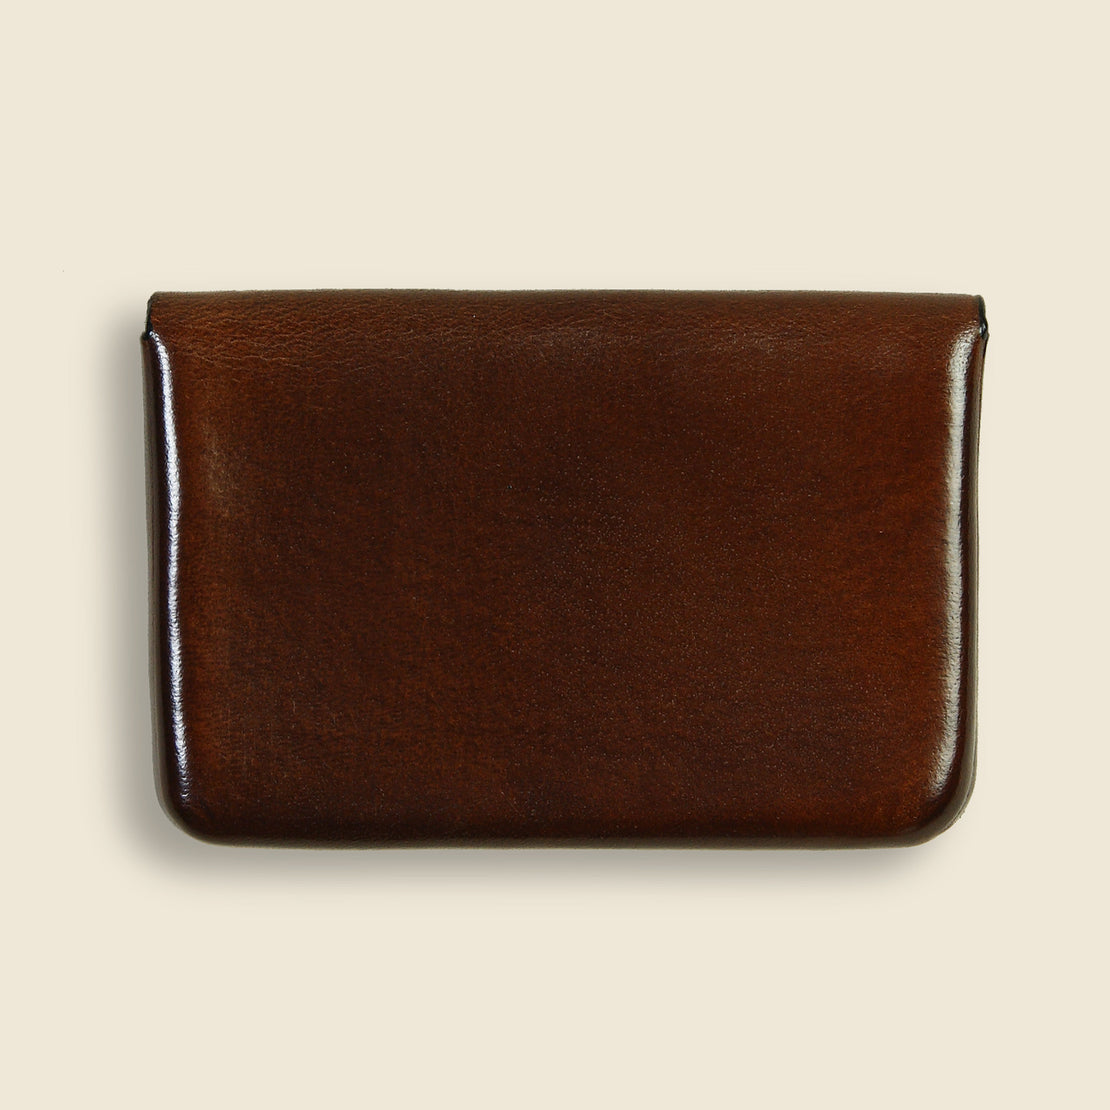 Business Card Holder - Dark Brown - Il Bussetto - STAG Provisions - Accessories - Wallets